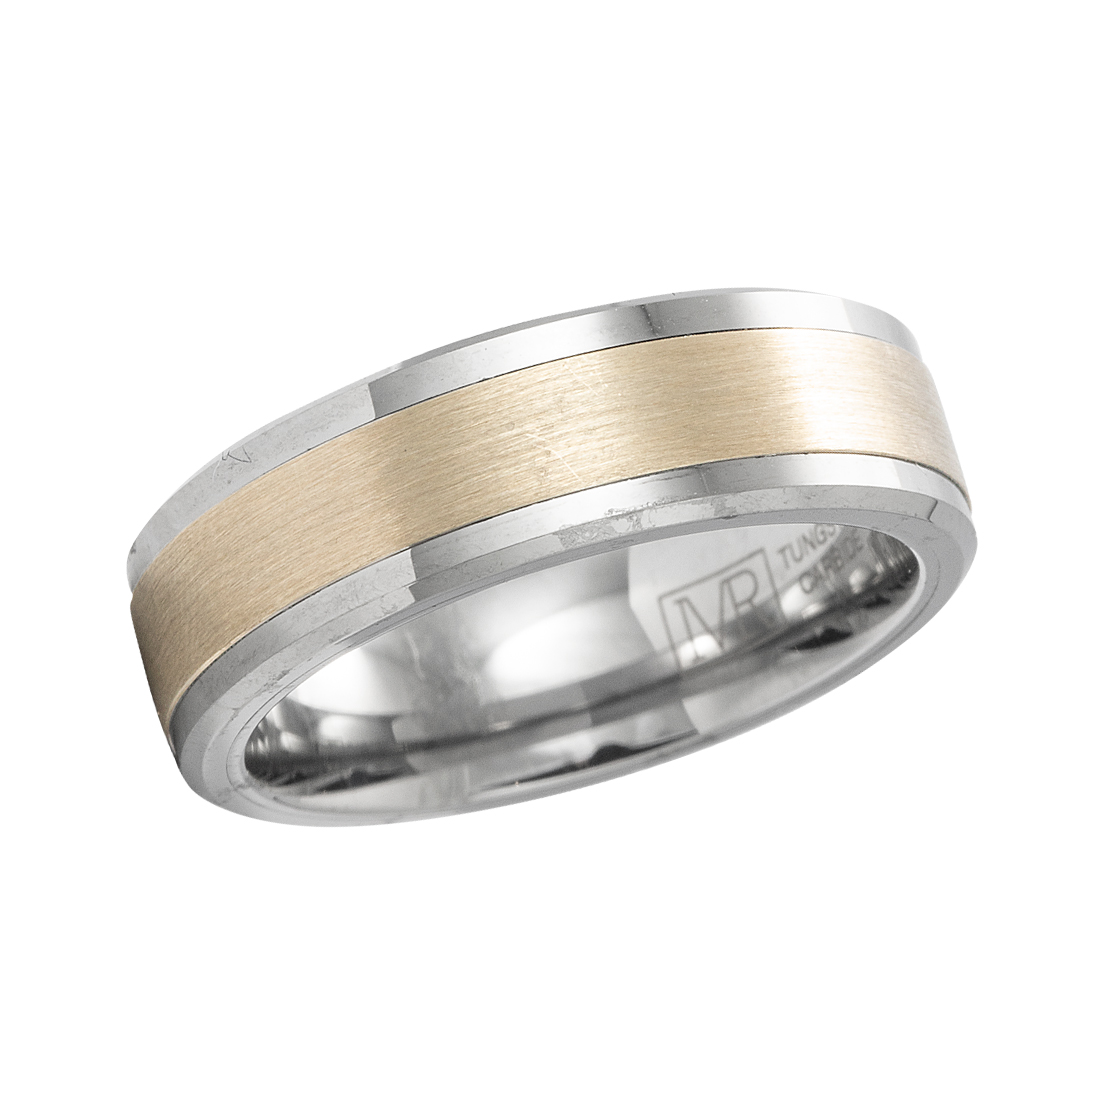 Tungsten and 10kt gold men's wedding band